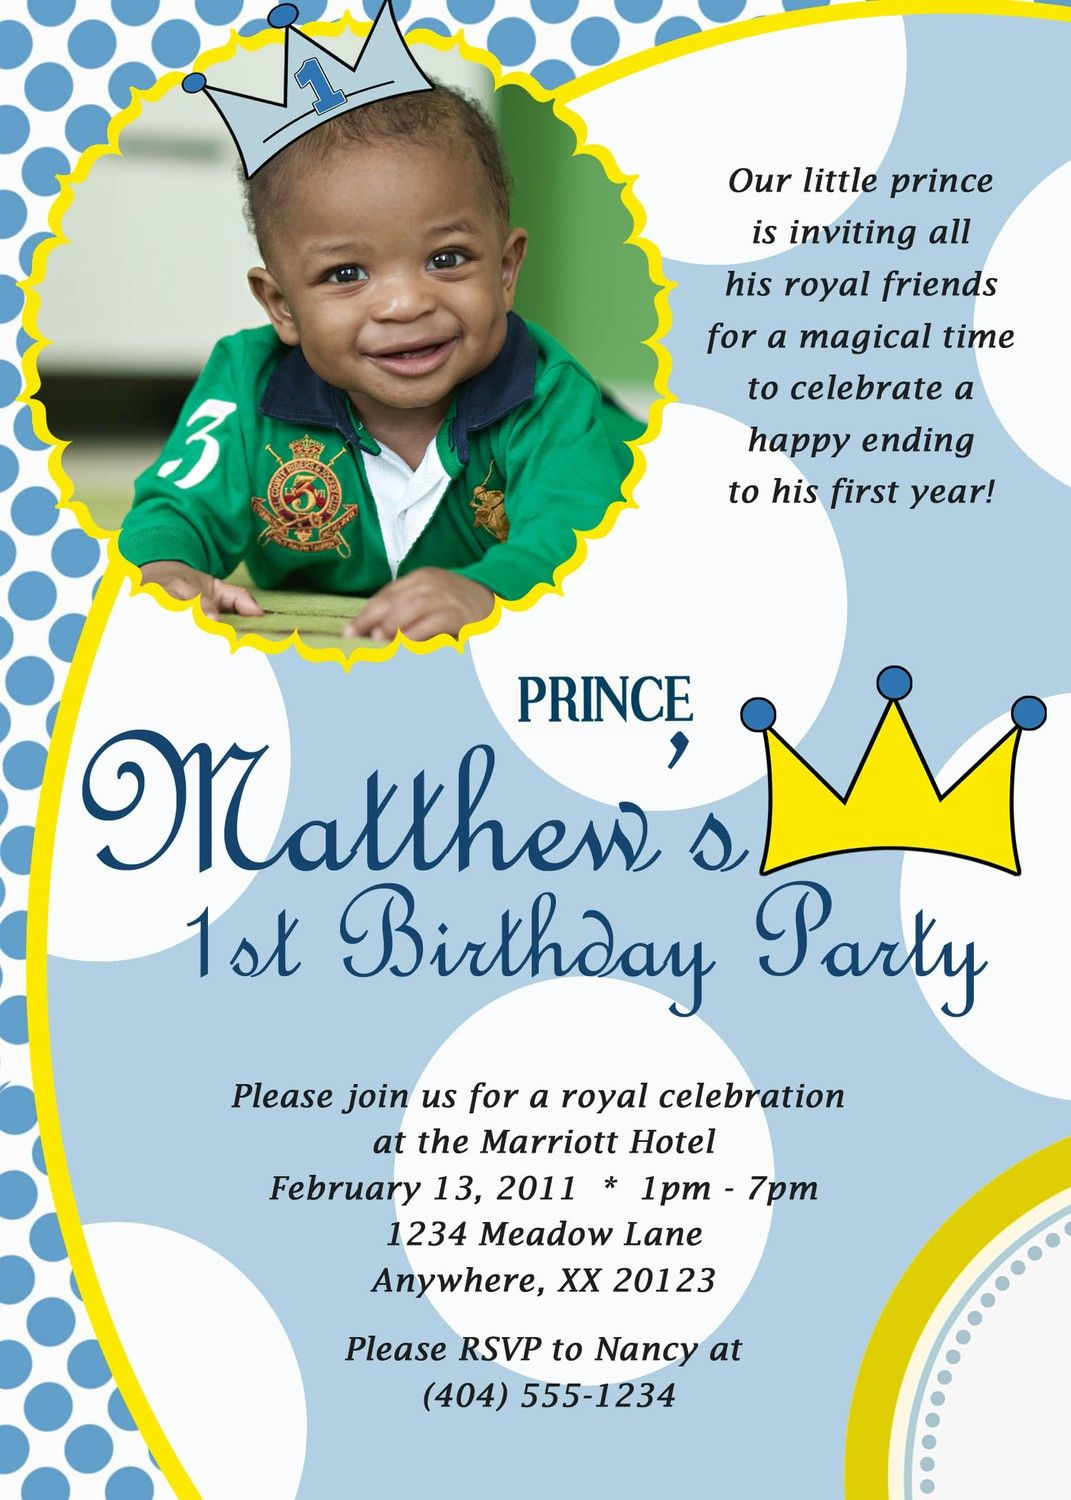 Little Prince Custom Digital Photo Birthday Party Invitation – Little Prince Birthday Invitations